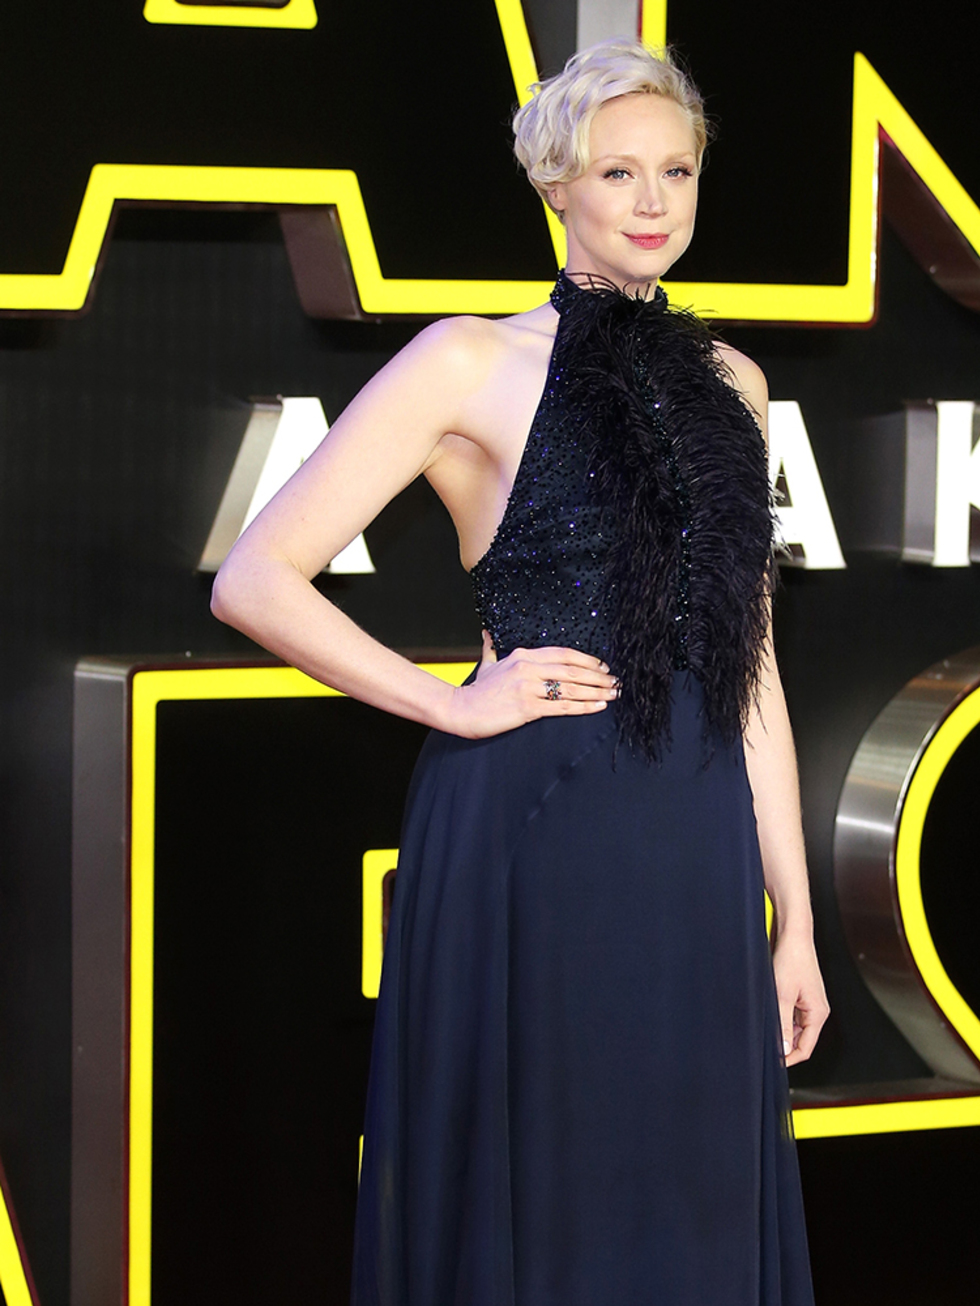 Gwendoline Christie at the Force Awakens Premiere. Captain Phasma hot